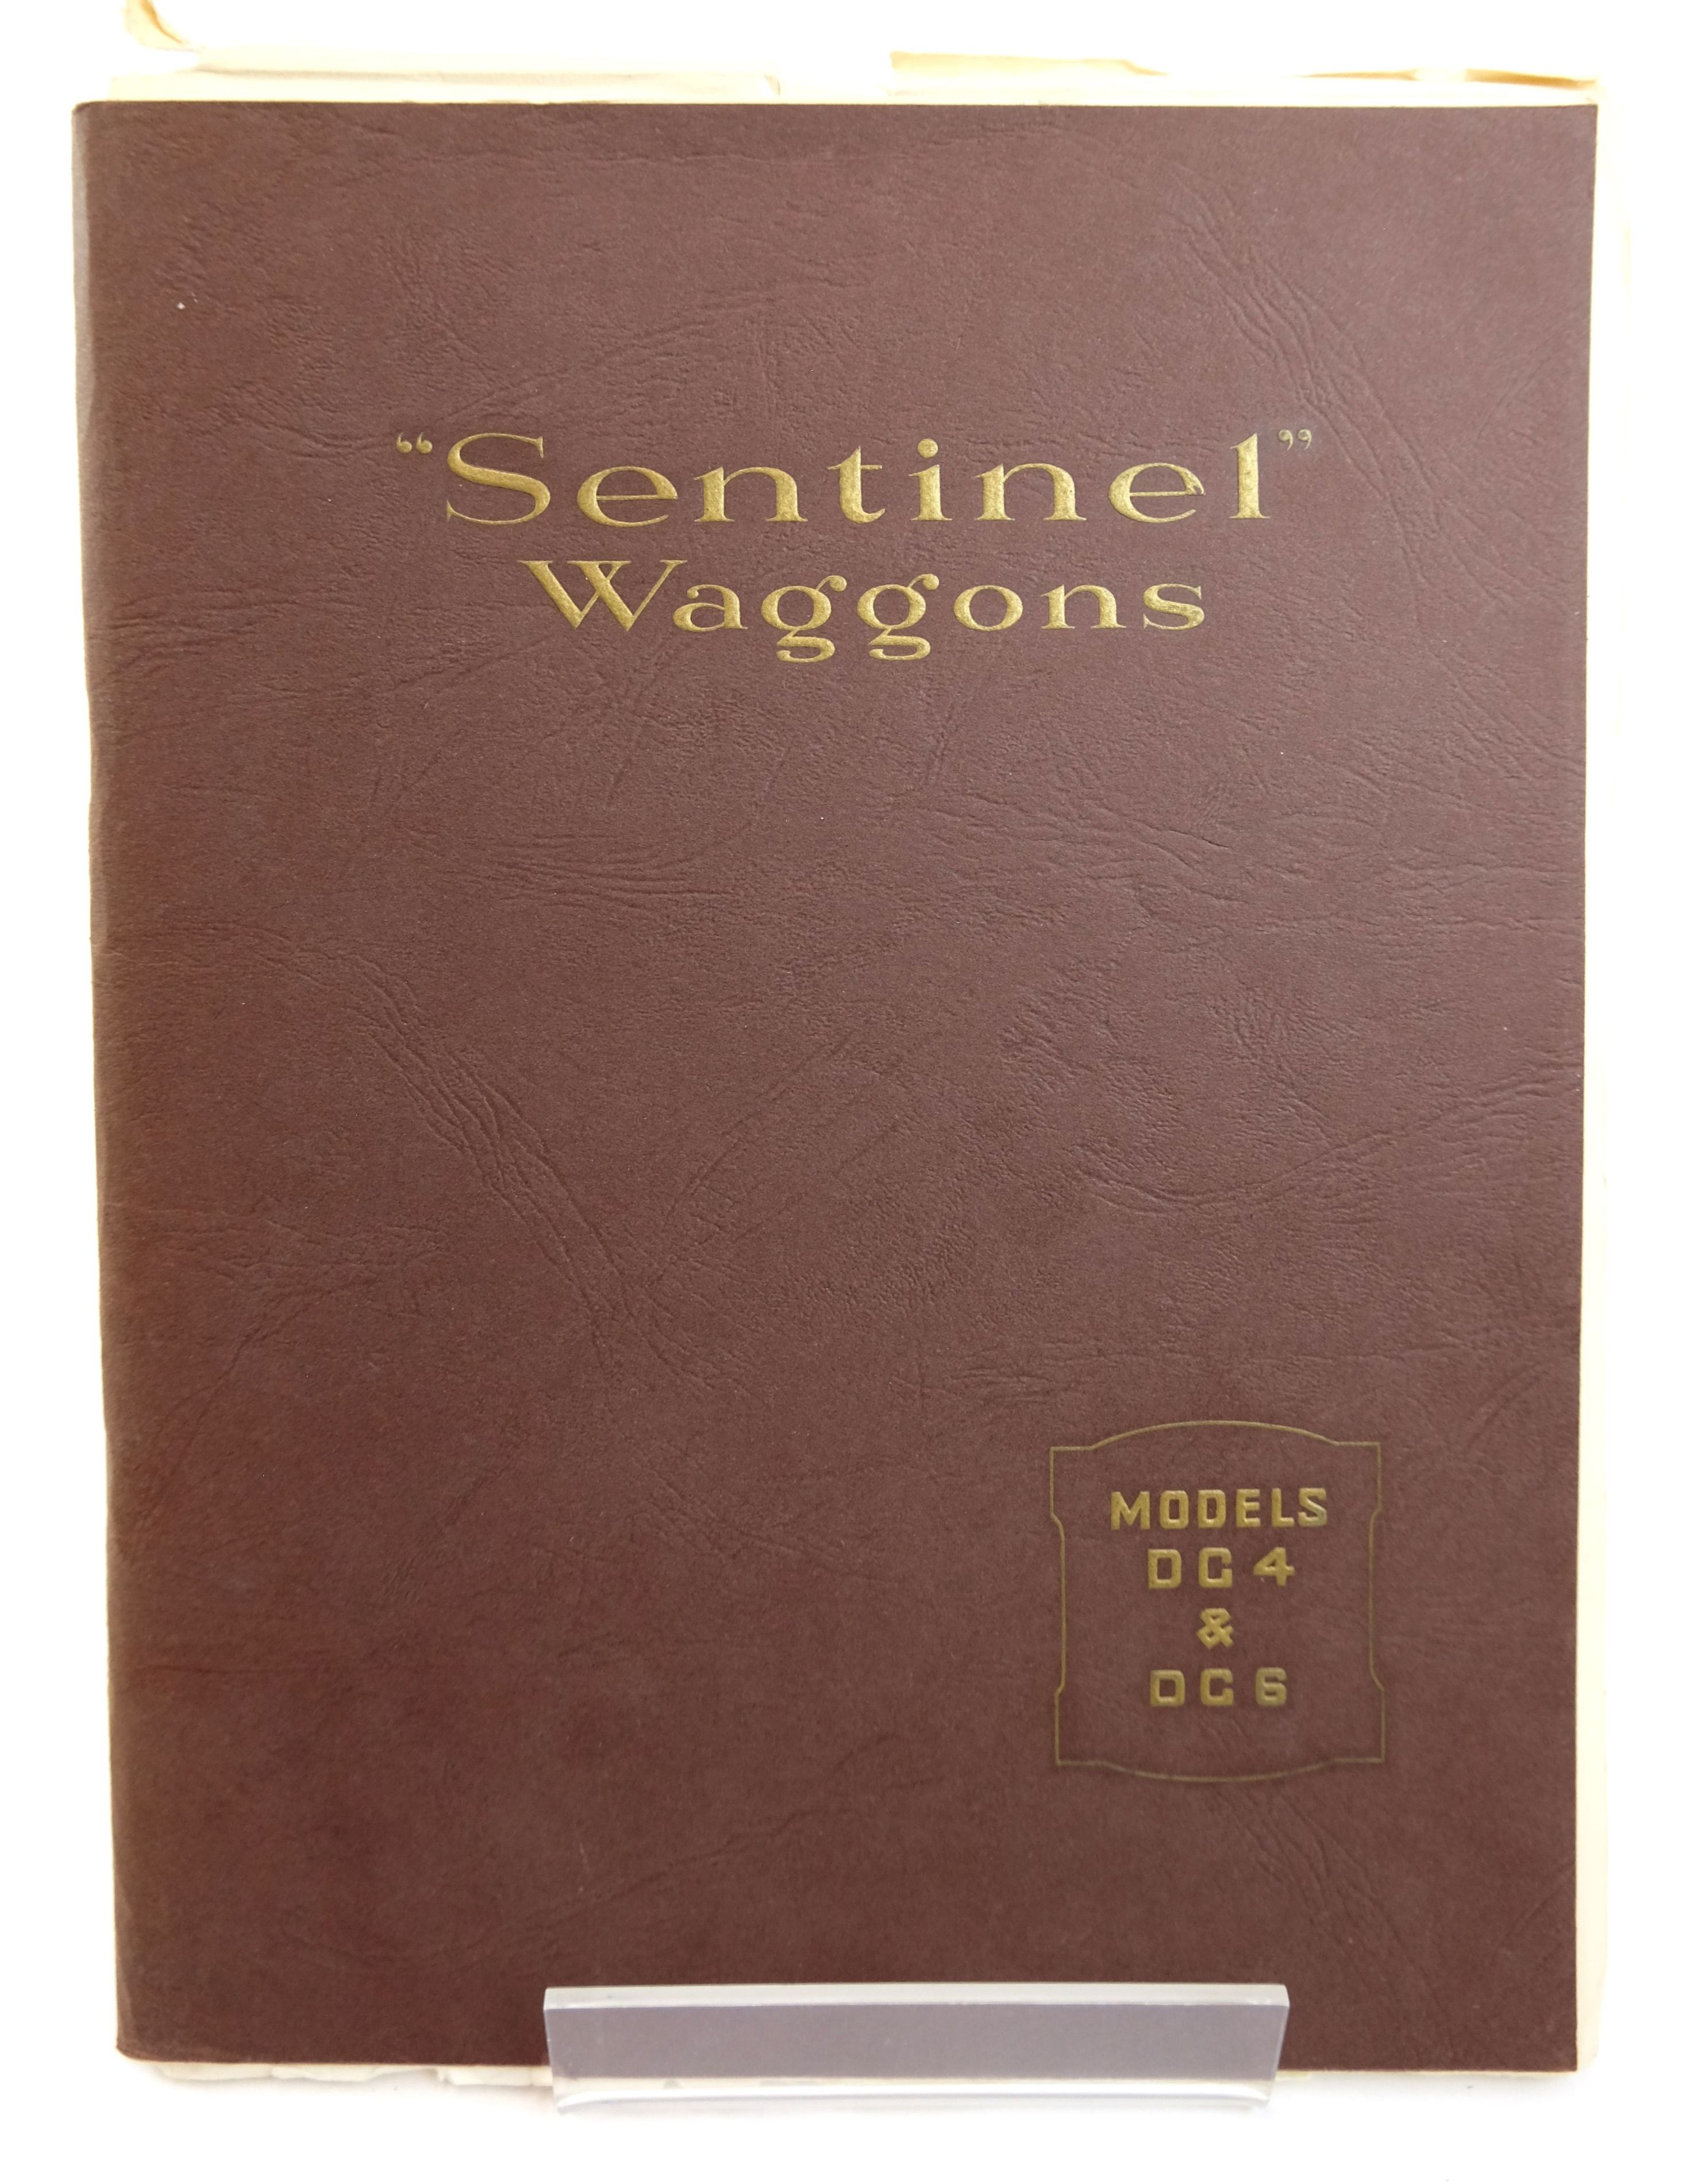 Photo of SENTINEL WAGGONS MODELS D.G.4 AND D.G.6 published by Polyhedron Printers Limited (STOCK CODE: 1818754)  for sale by Stella & Rose's Books